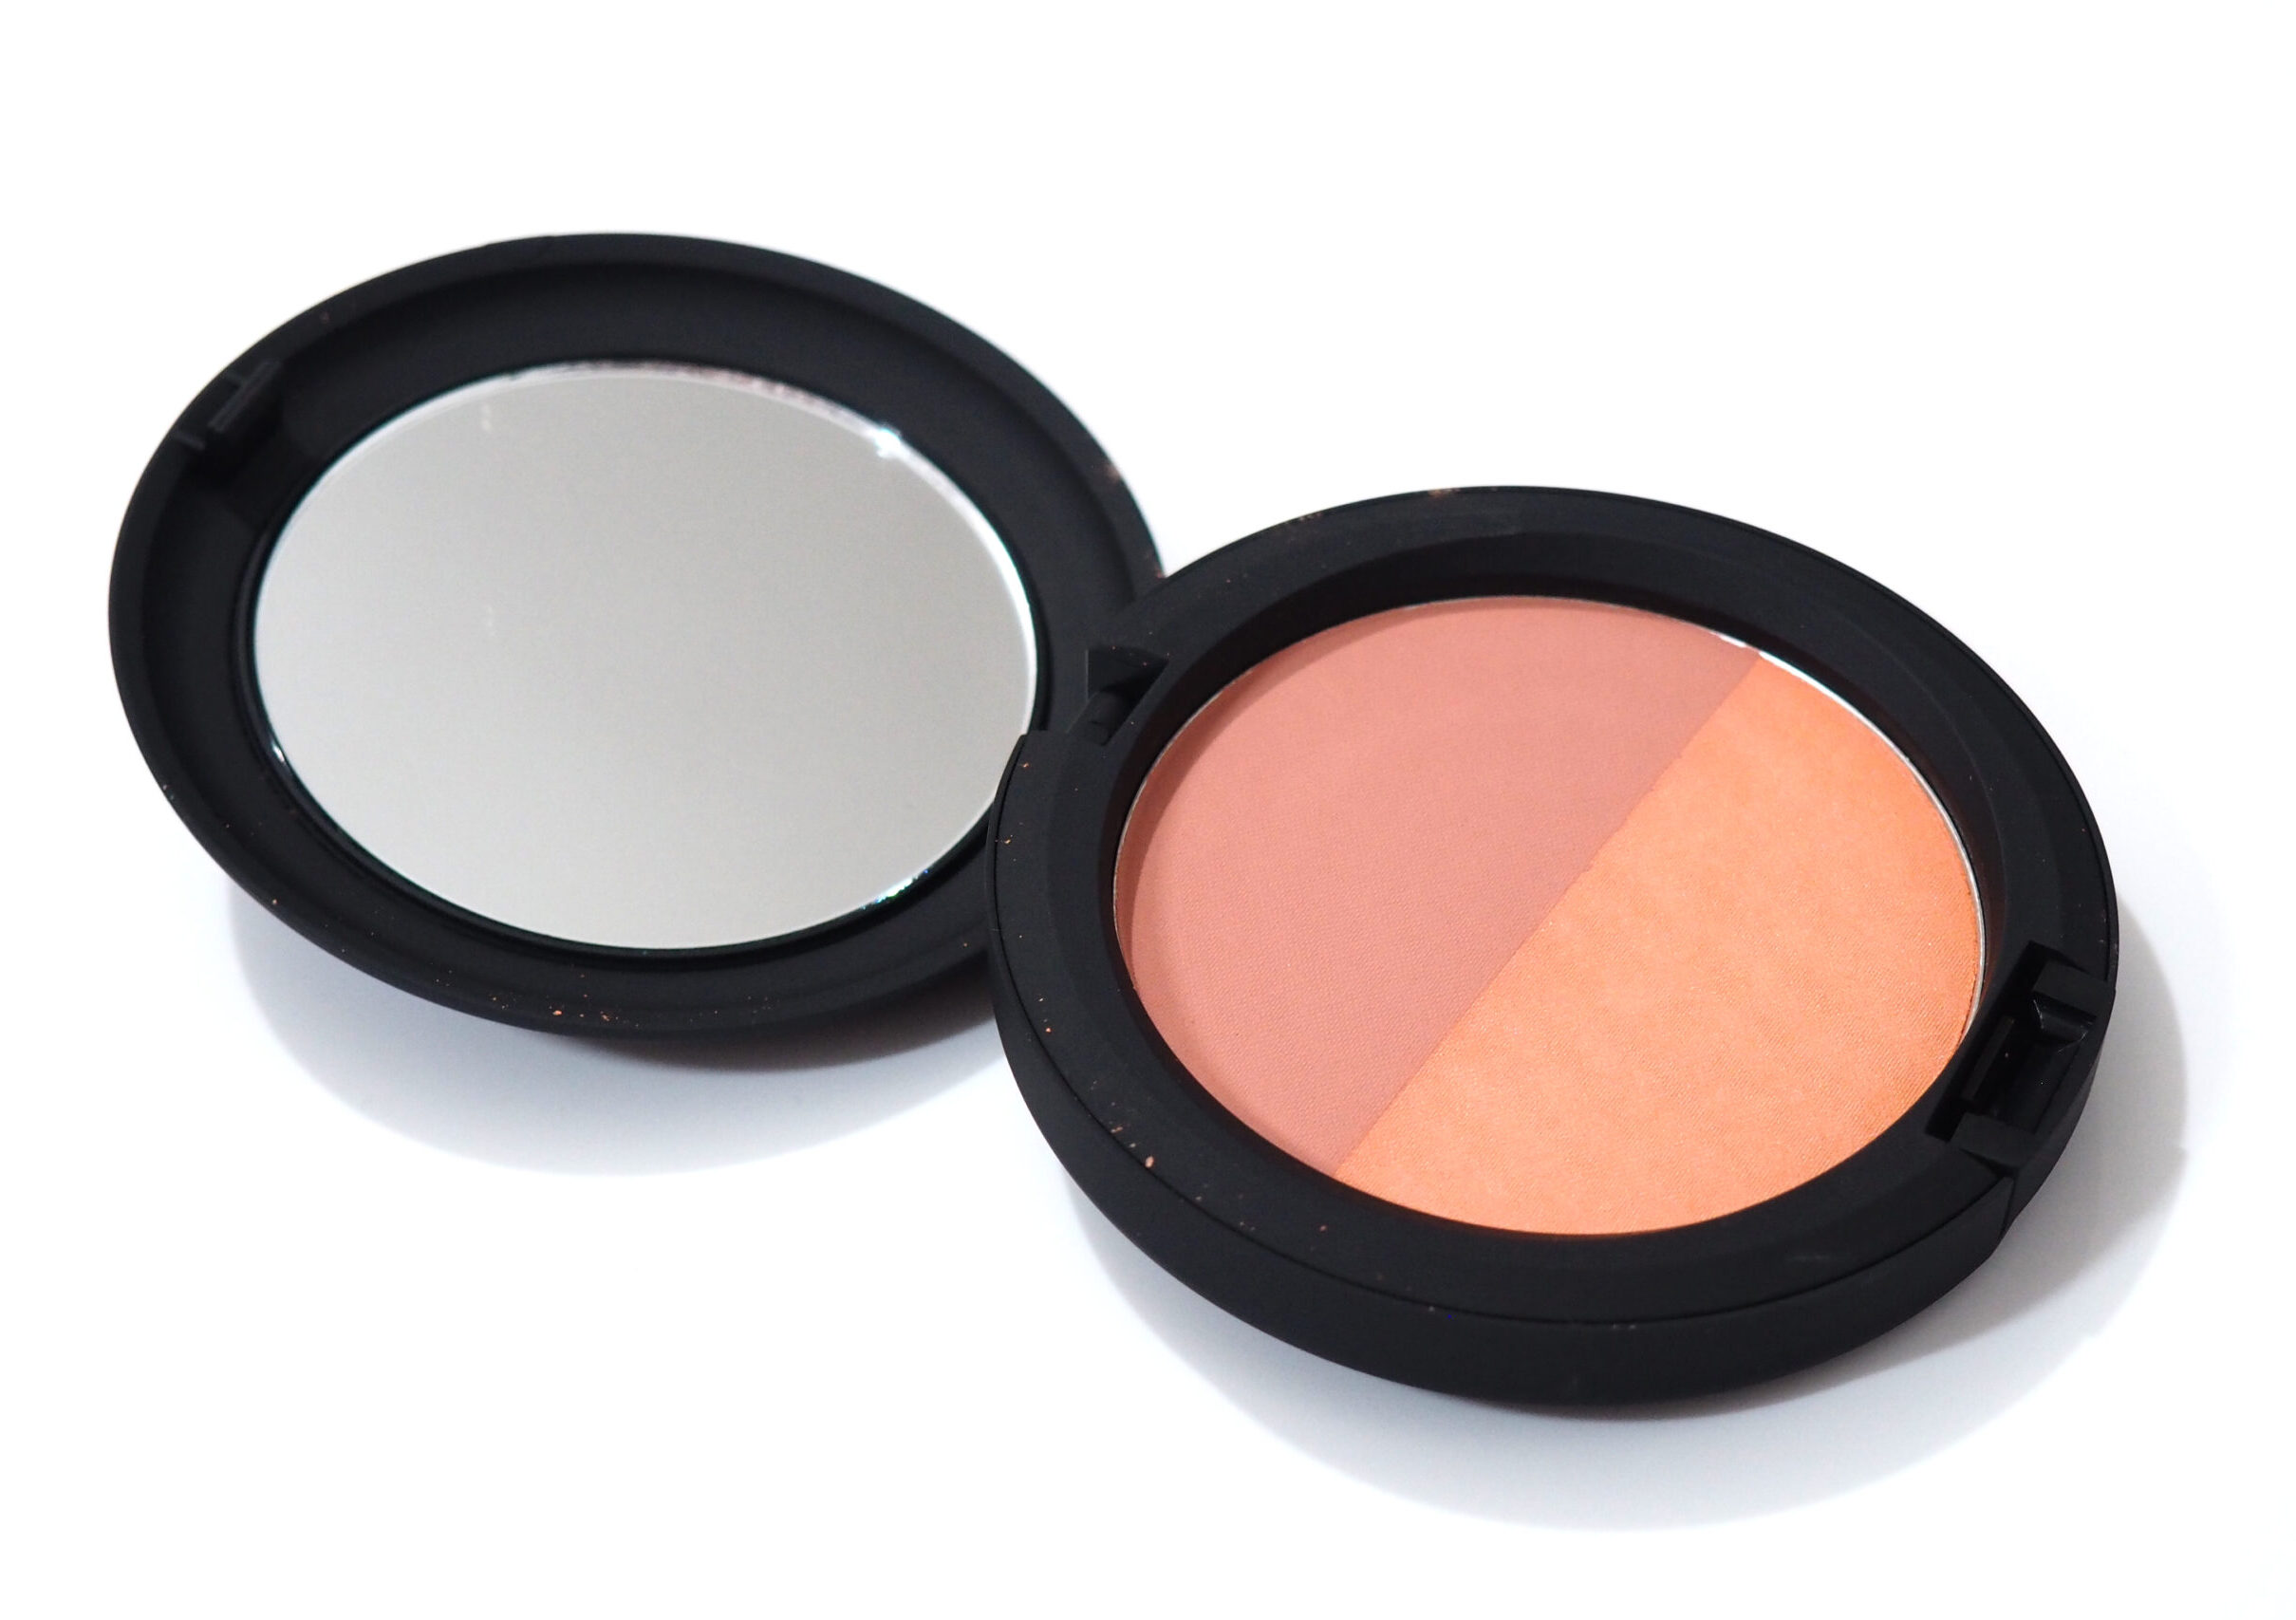 MAC Good Health Great Wealth Powder Blush Duo